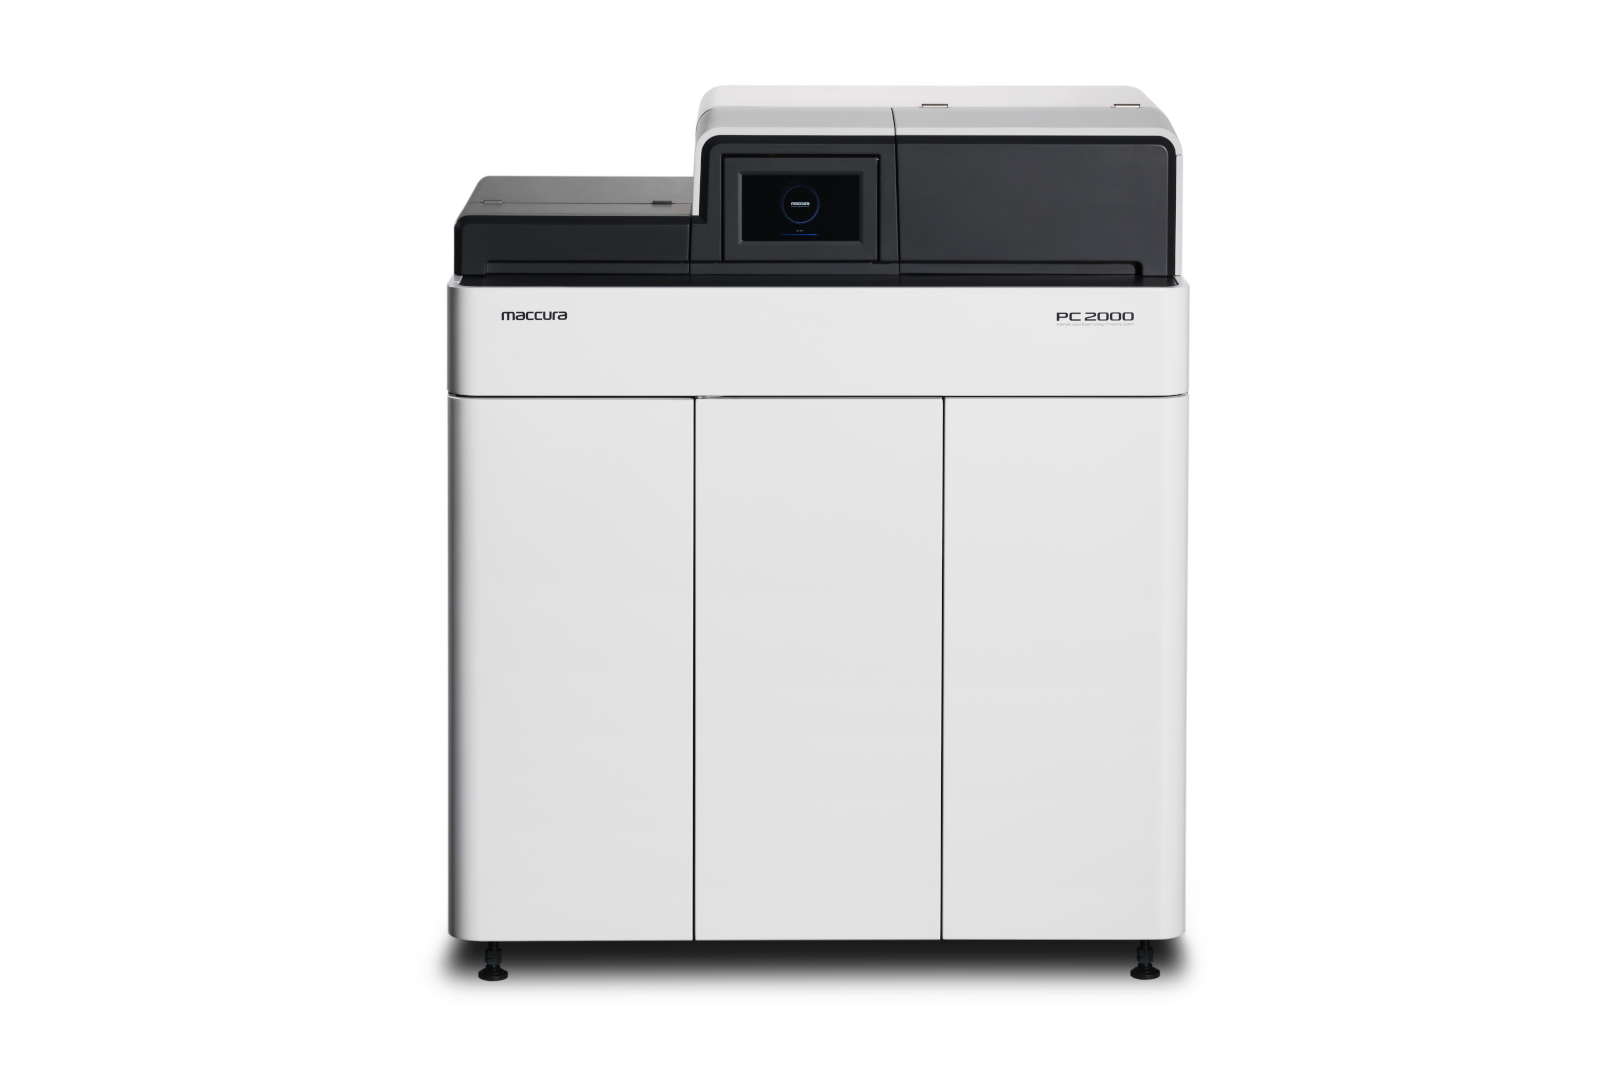 Maccura PC2000 Automatic Liquid-based Cytology Processing System